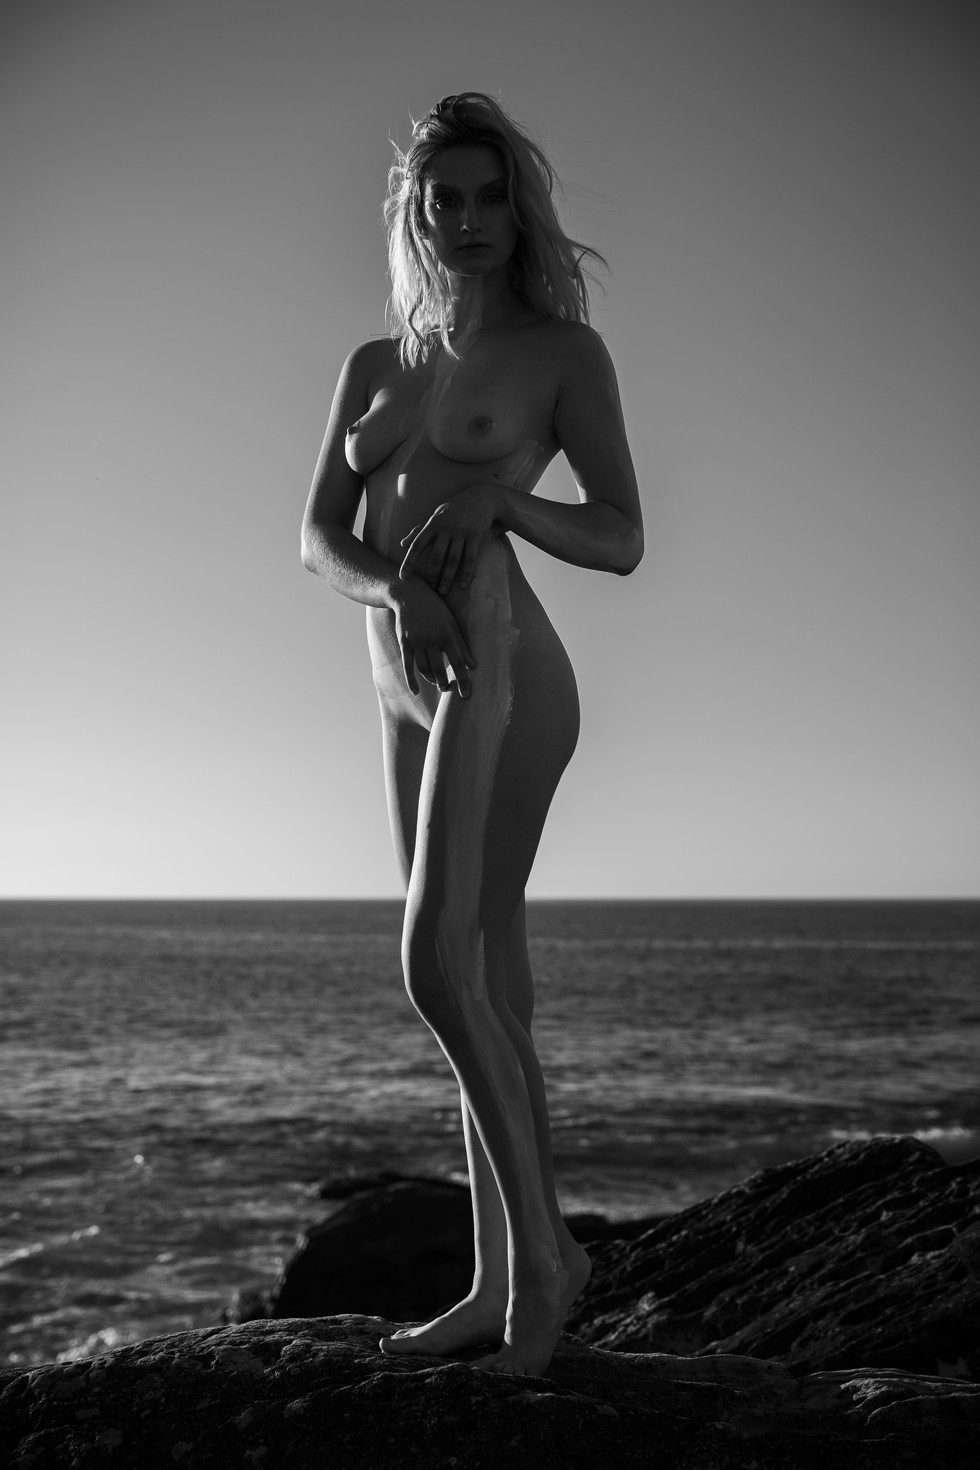 Brooke_by_CoogeePhotography-436536.jpg